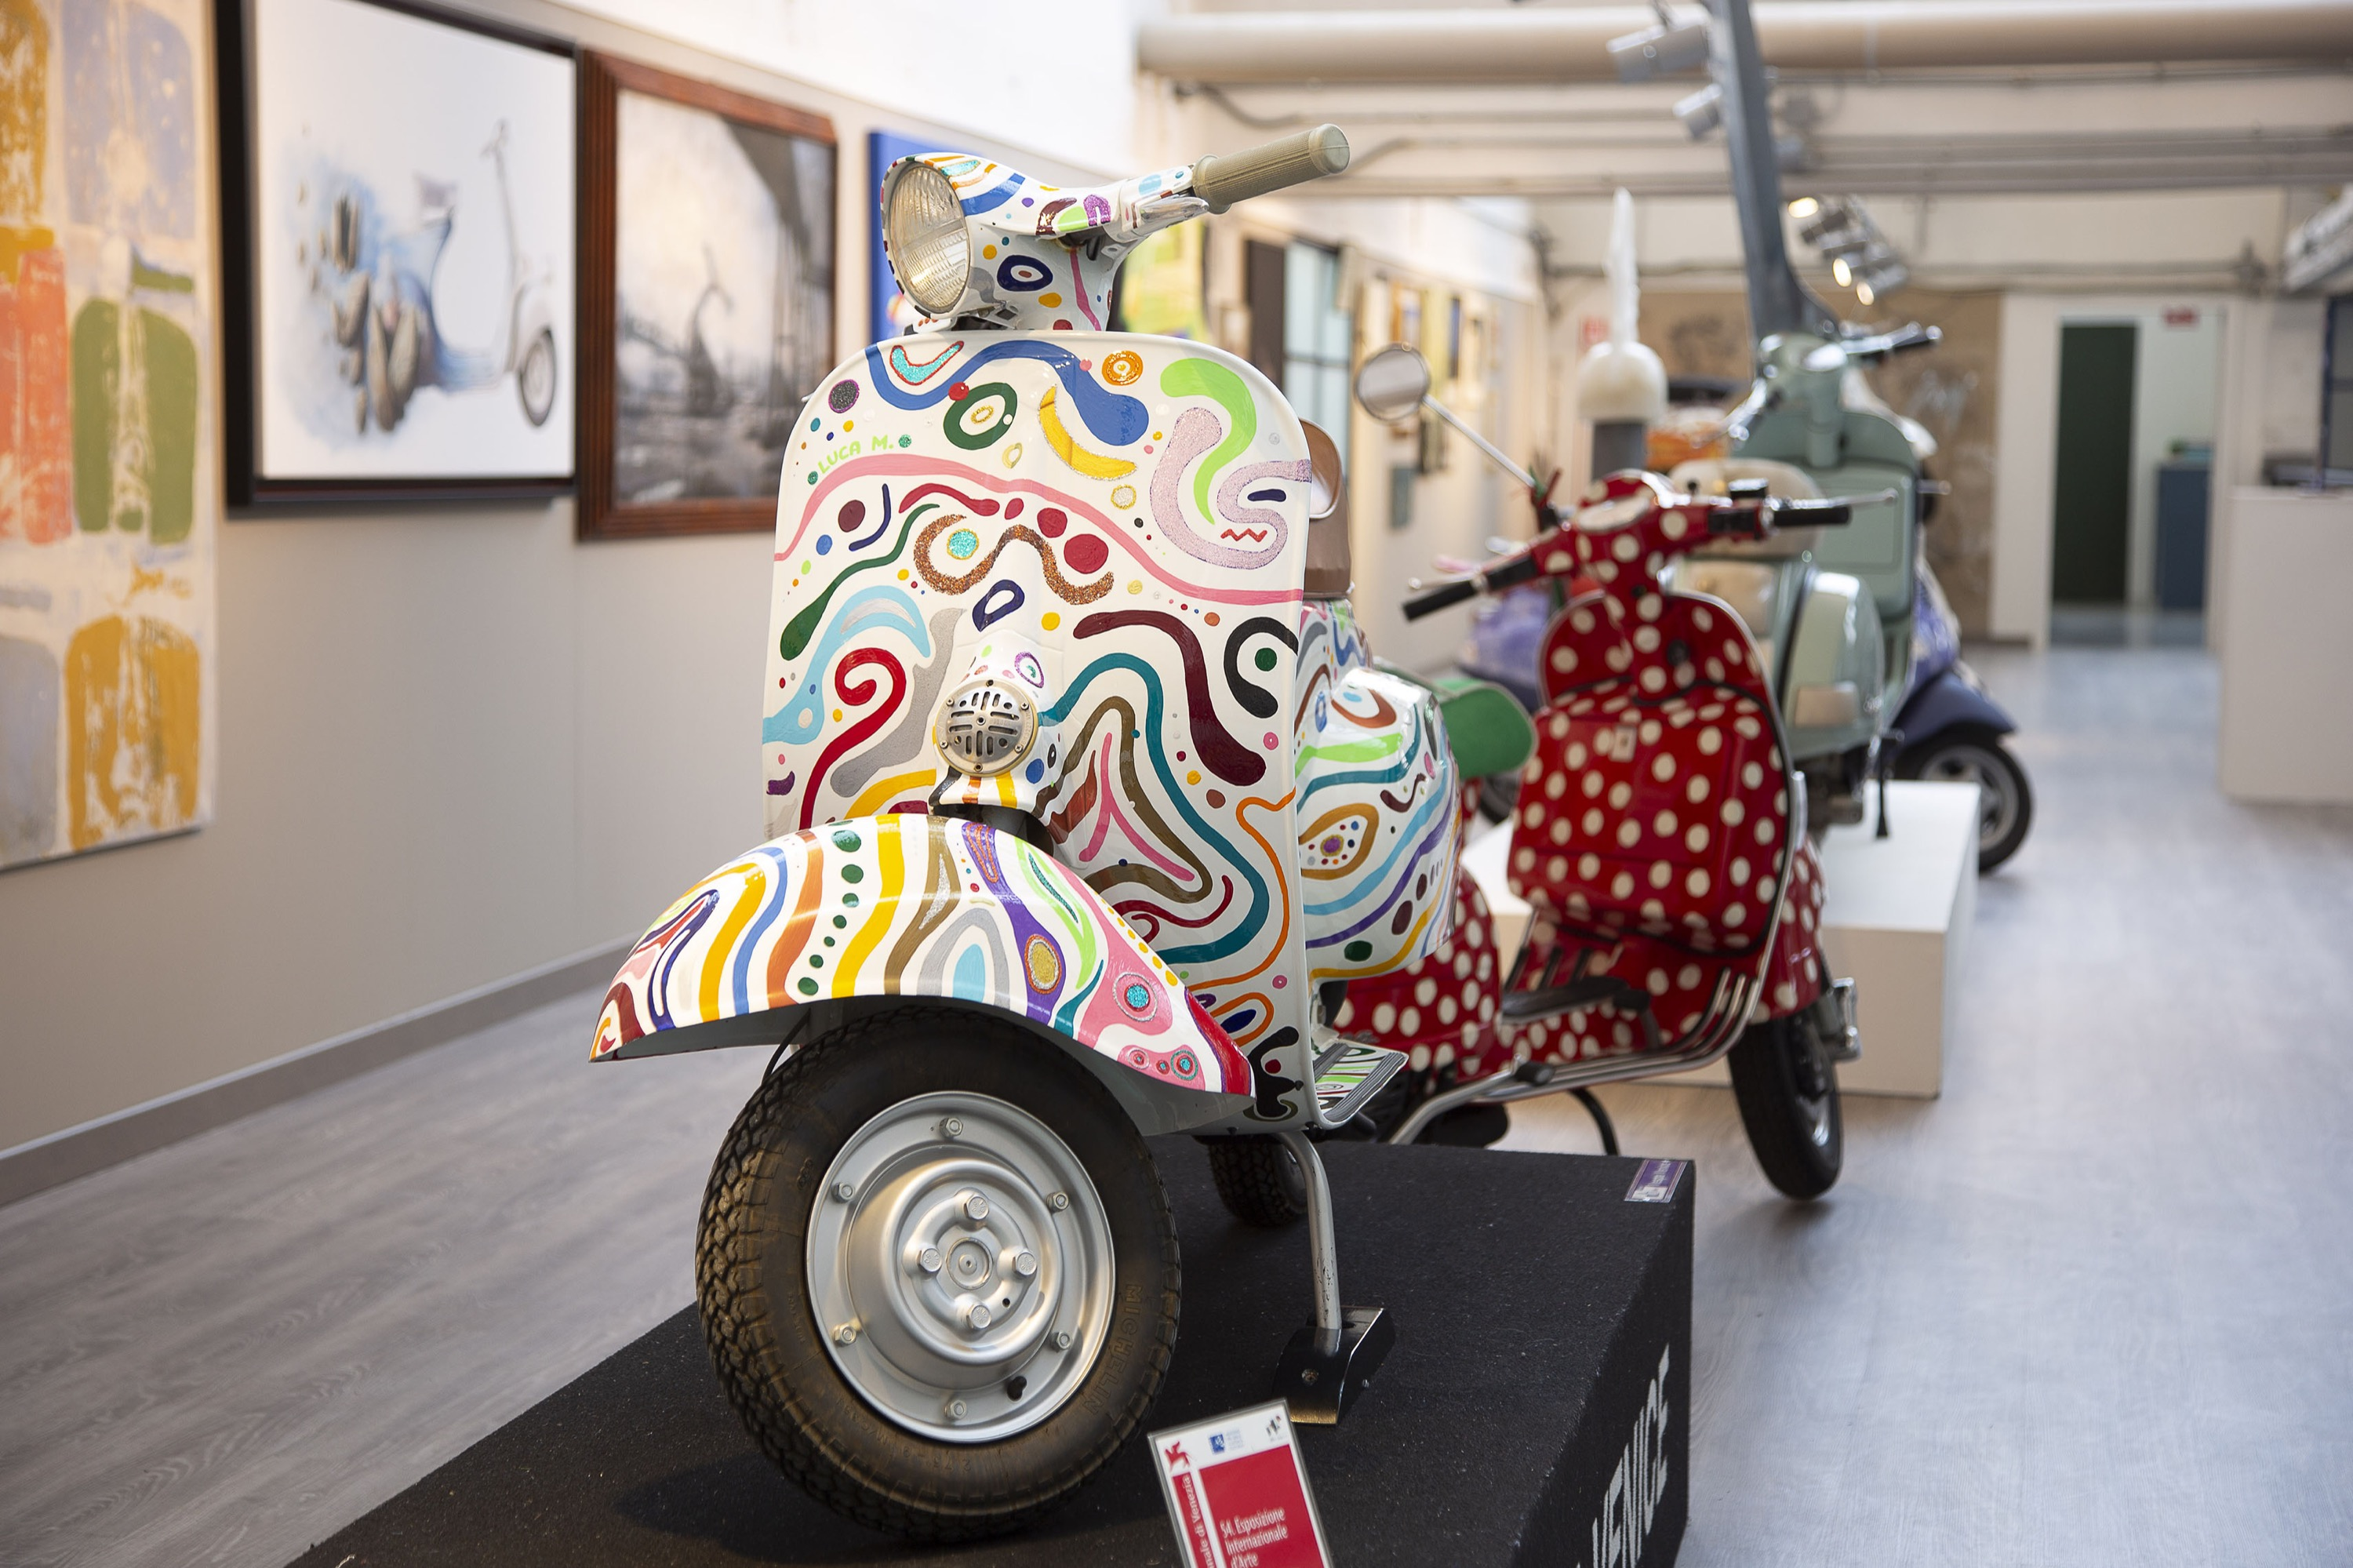 Piaggio Museum Earns Place in TripAdvisor Hall of Fame